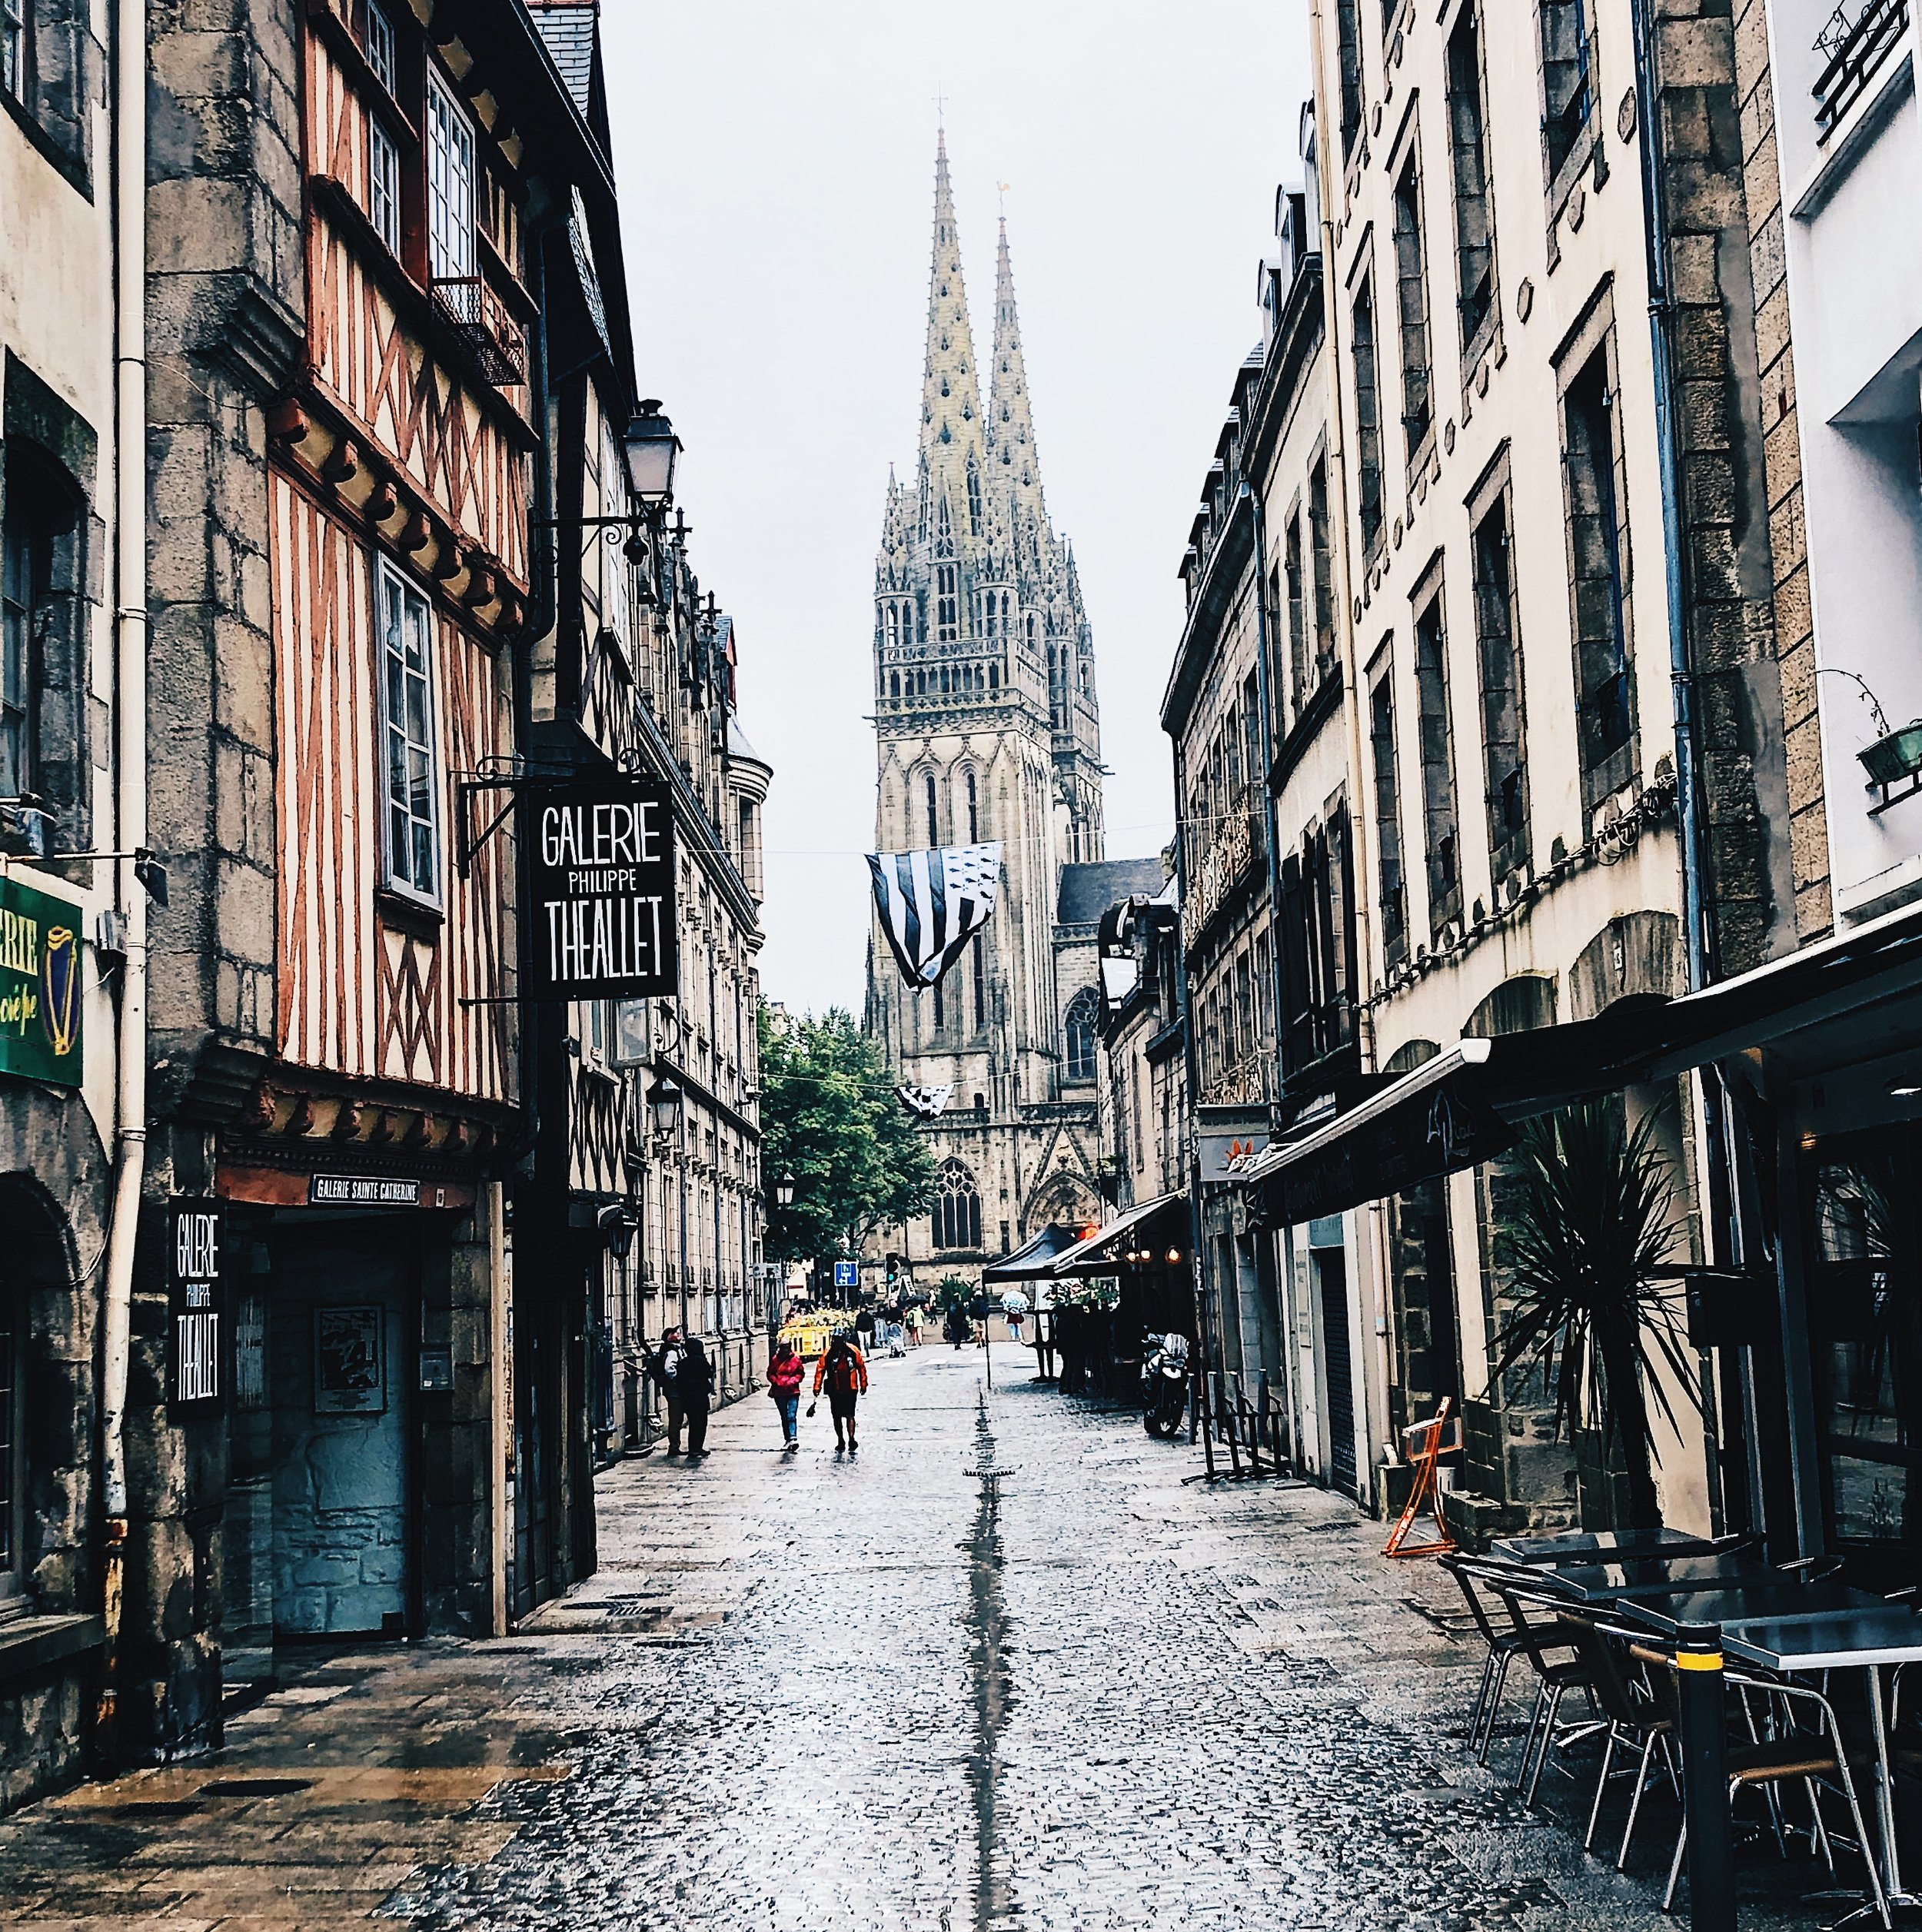 Even on a rainy Sunday Quimper is a really beautiful city.